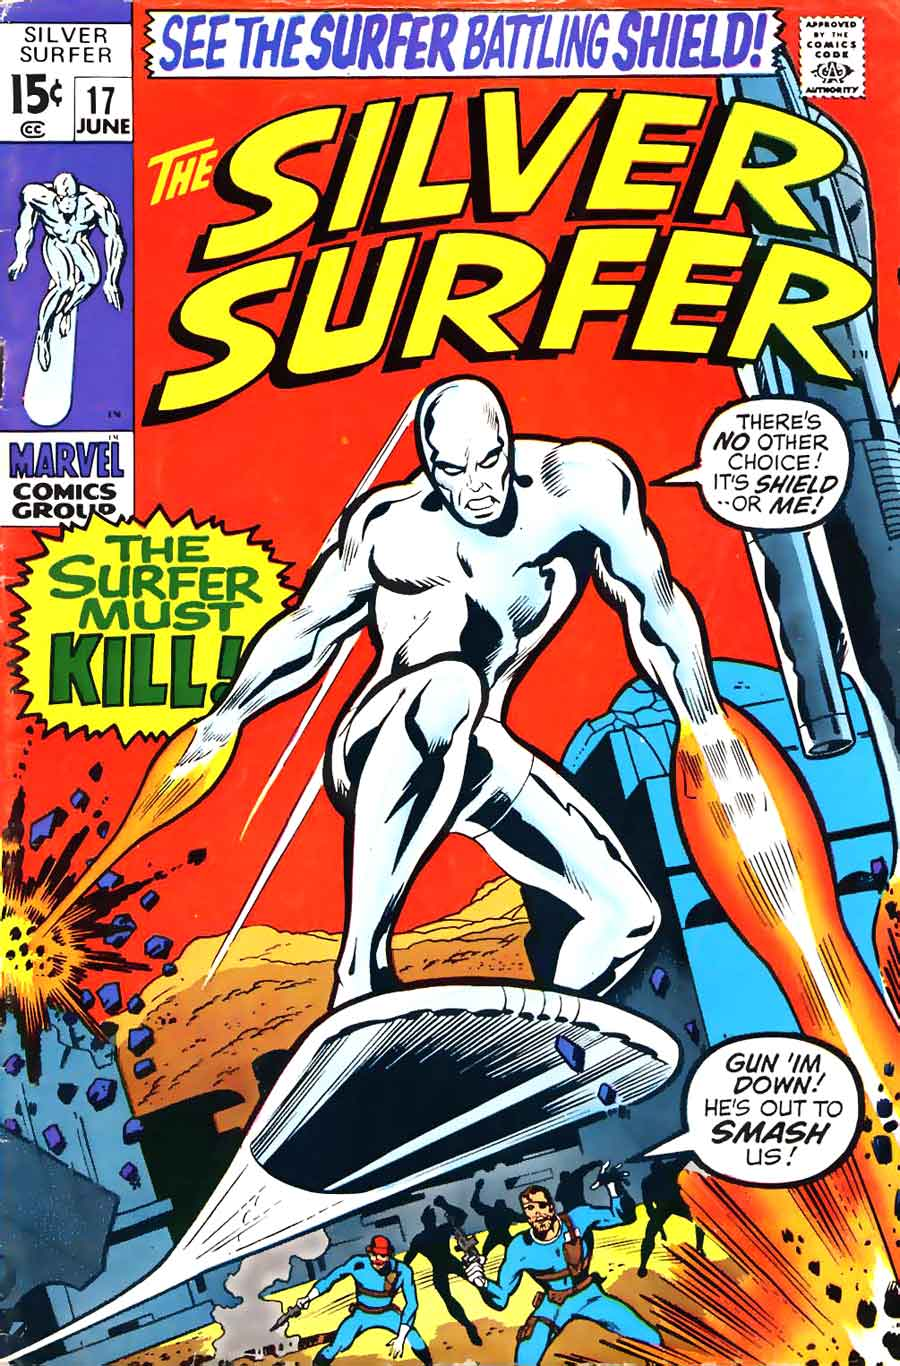 Silver Surfer v1 #17 marvel comic book cover art by Barry Windsor Smith